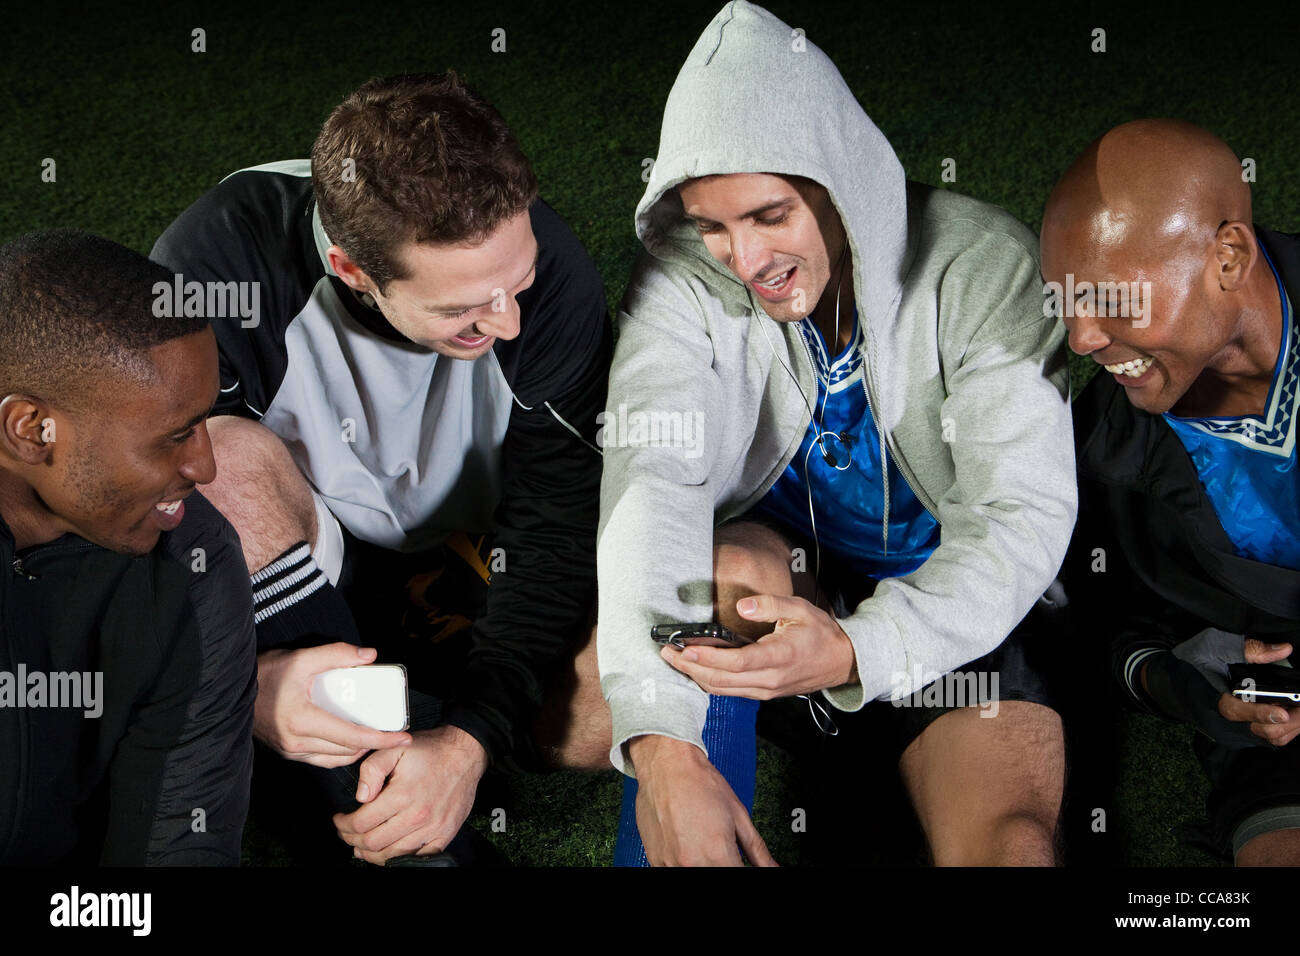 Soccer players looking at cellphone on pitch - Stock Image